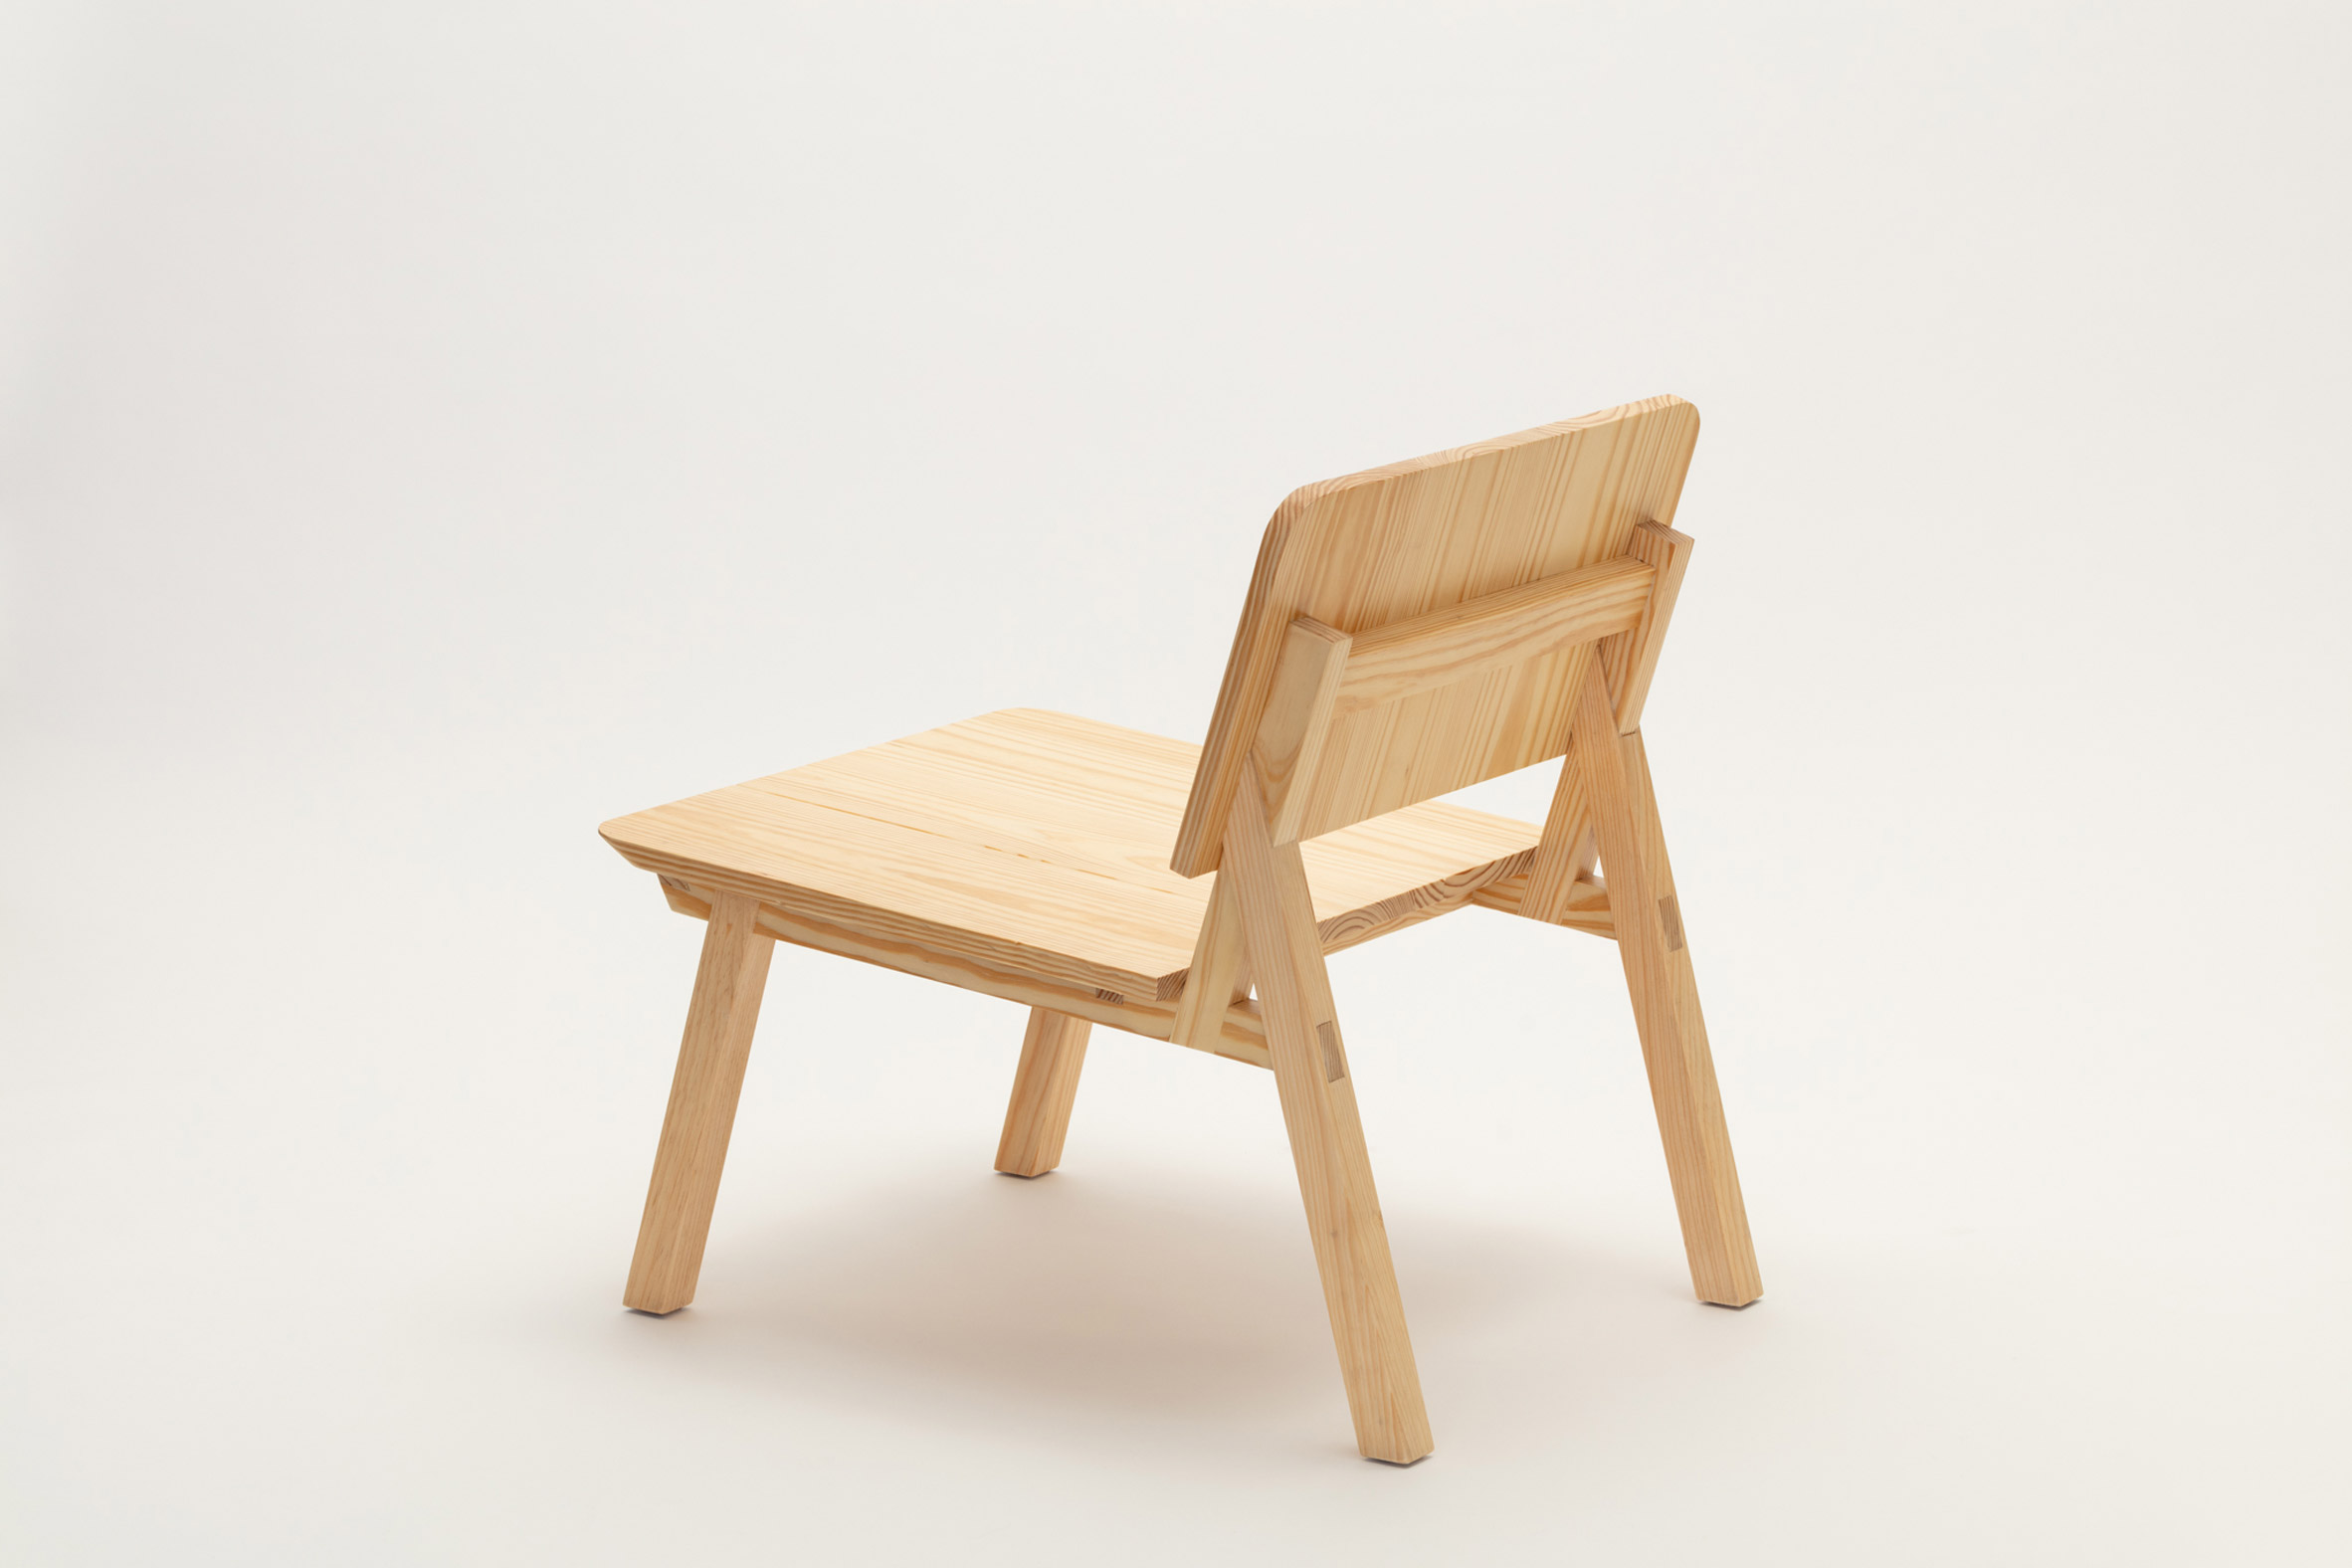 Lounge chair from Jorge Diego Etienne's Tempo collection for Techo